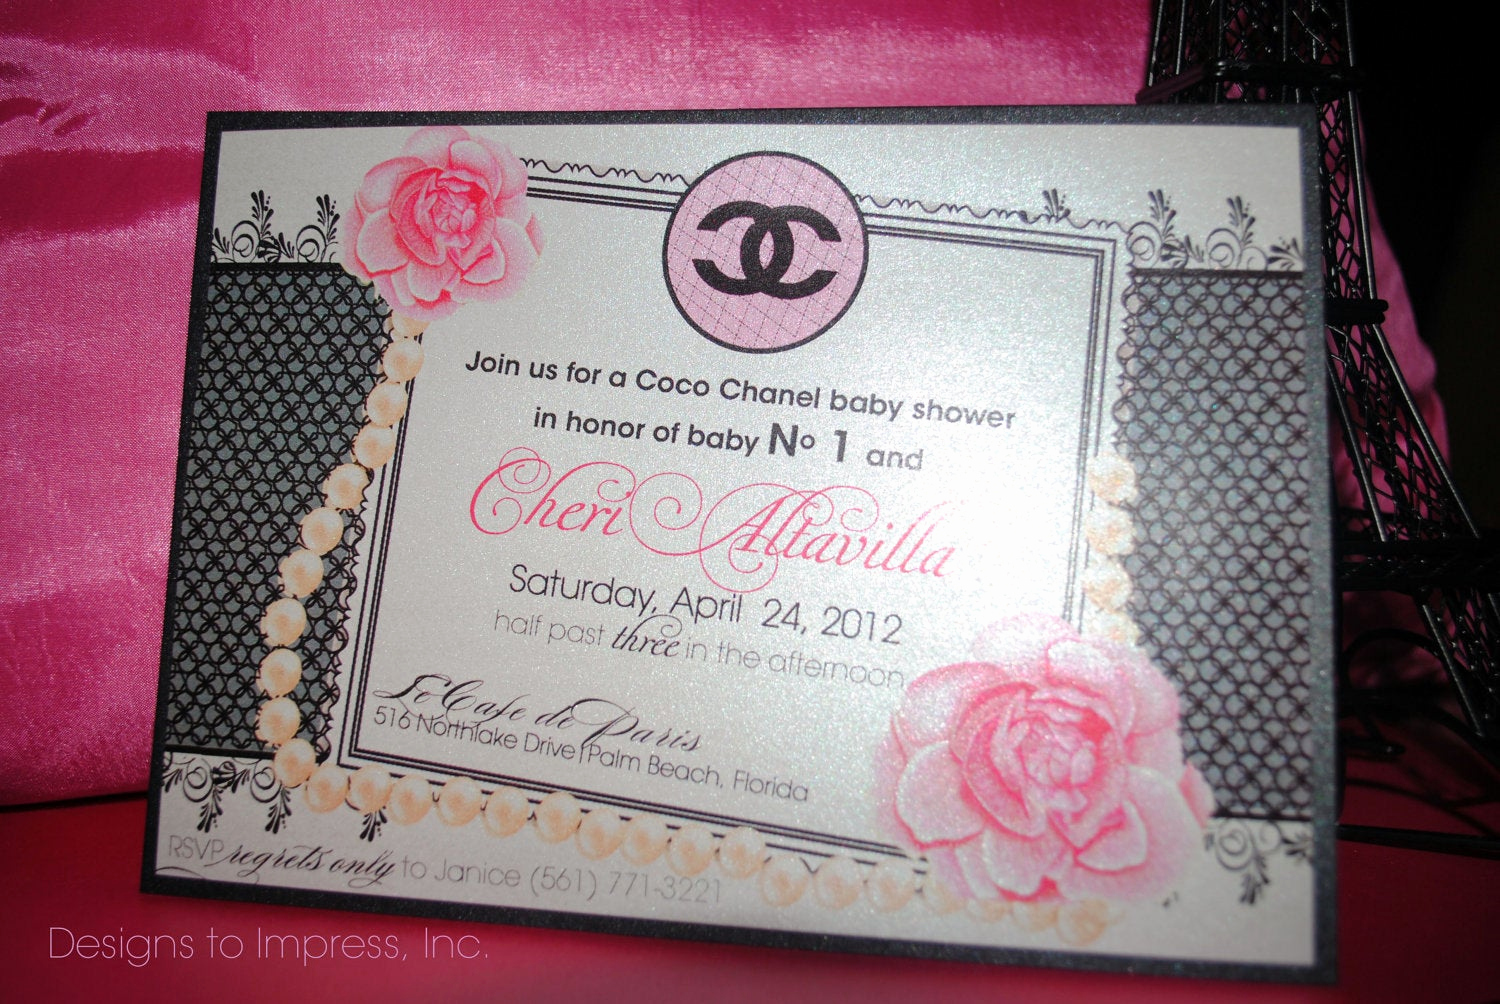 Chanel Bridal Shower Invitation Fresh Reserved Listing for Bleamtiff 45 Coco Chanel Baby Shower